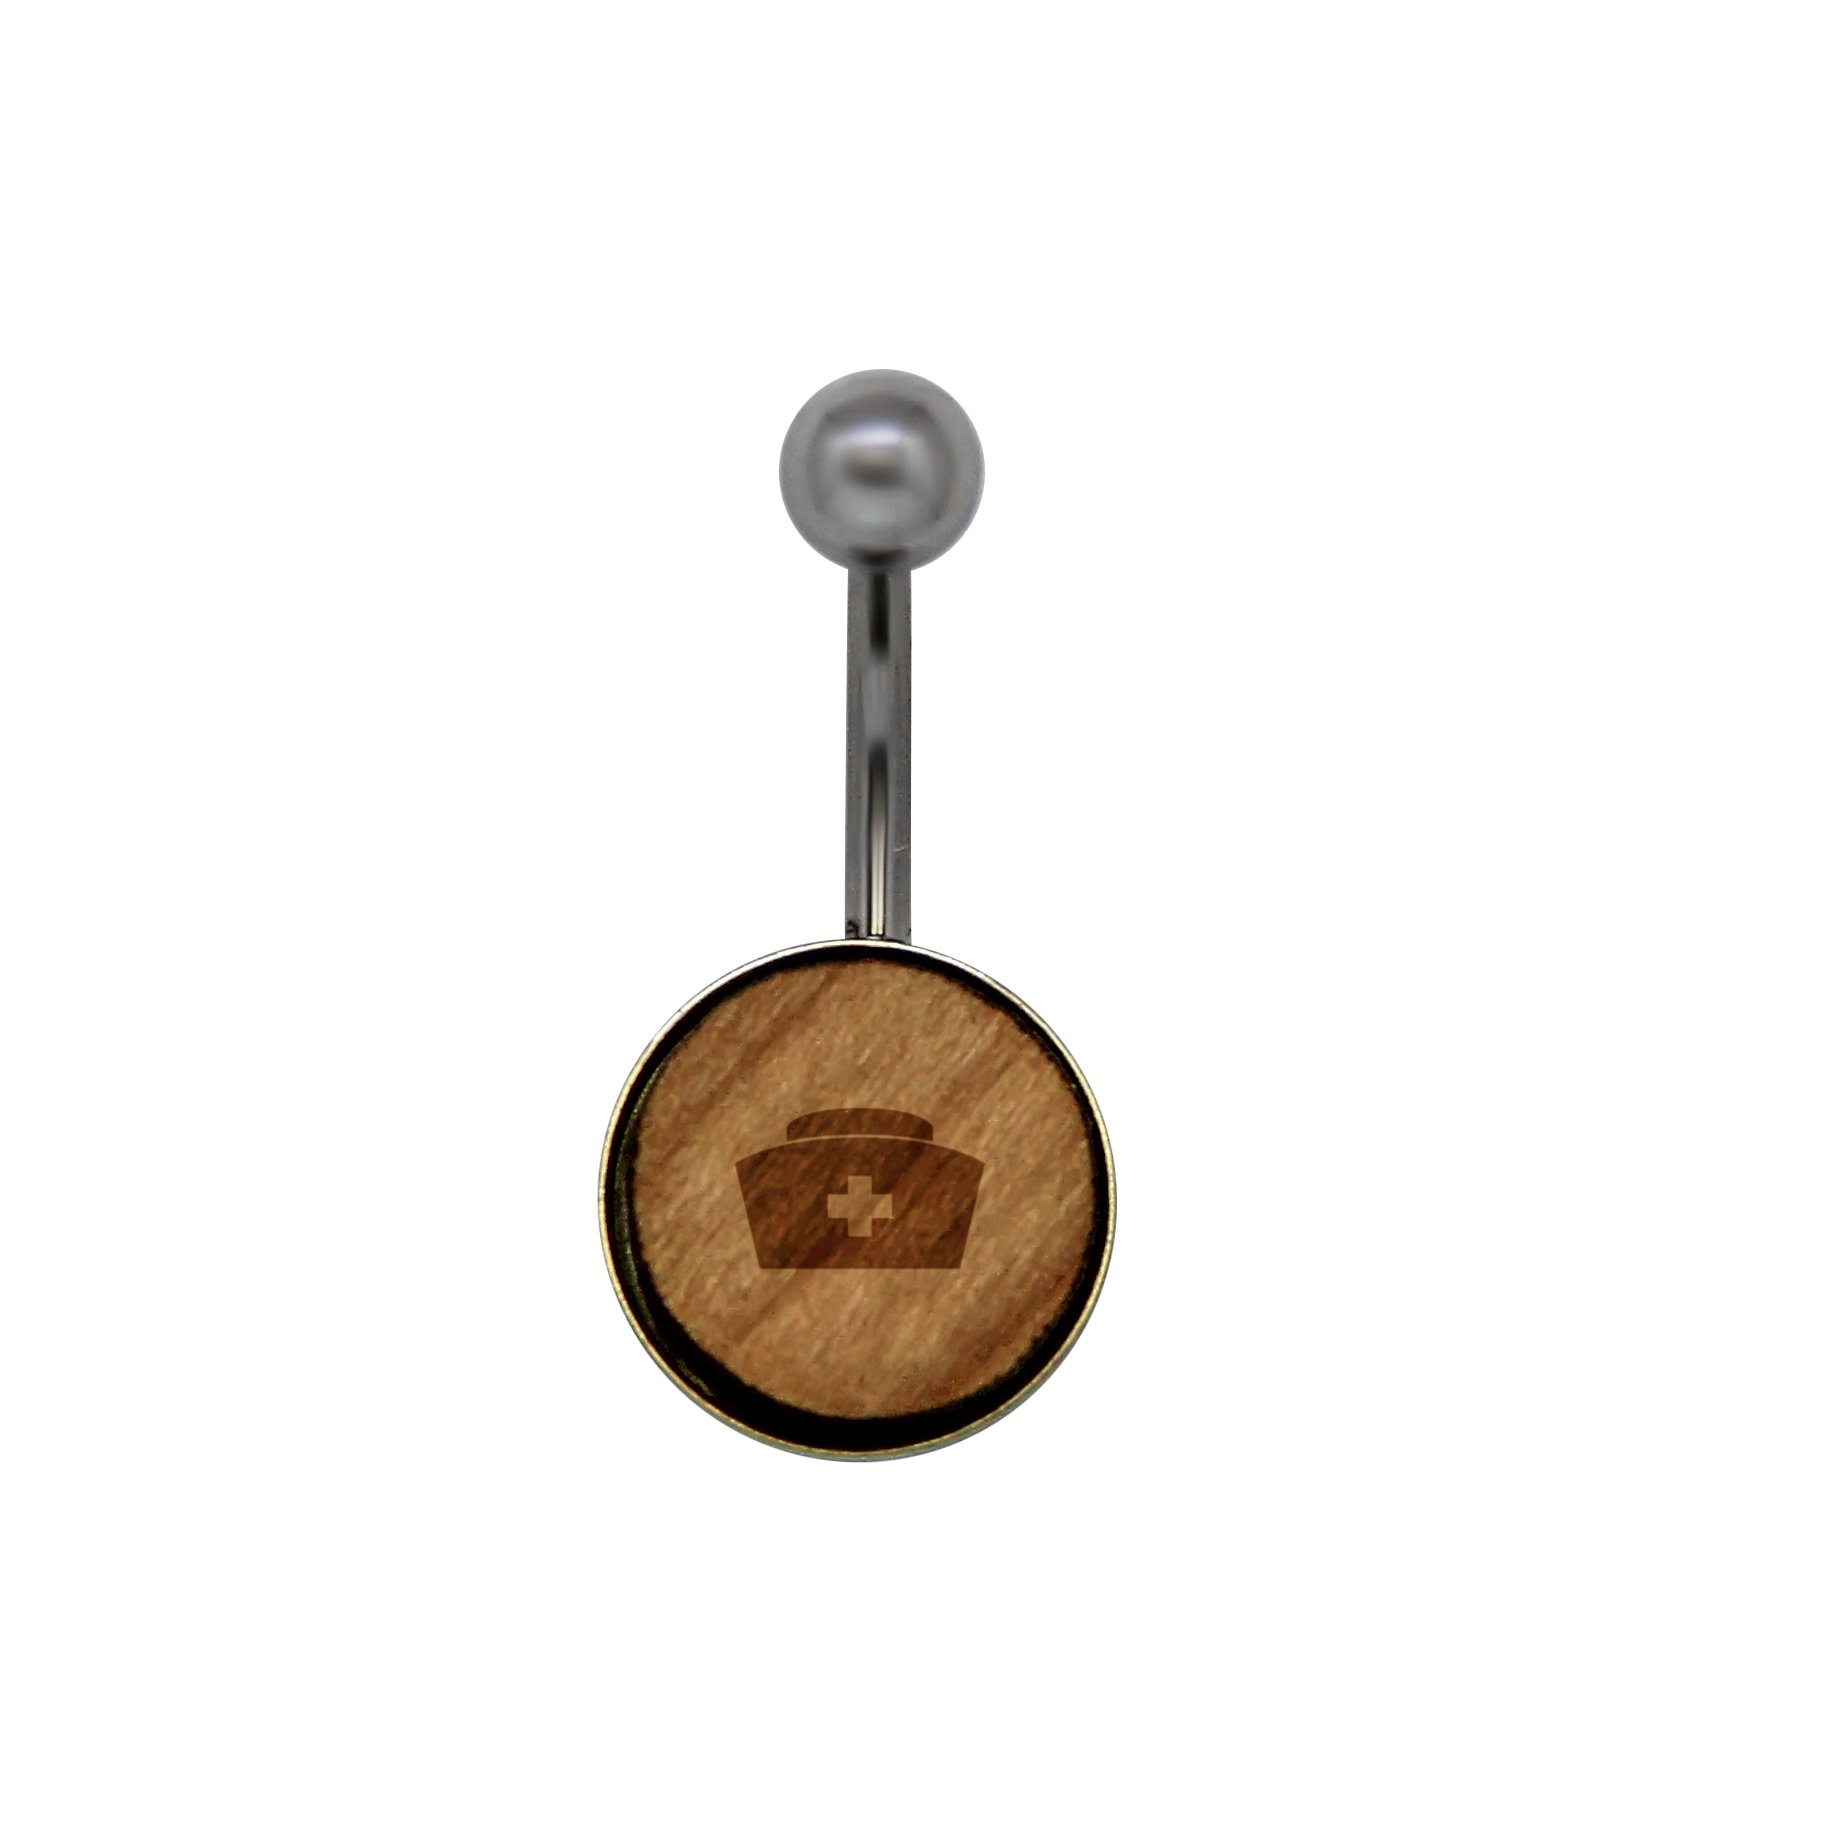 Nurse Hat Surgical Stainless Steel Belly Button Rings - Size 14 Gauge Wooden Navel Ring - Rustic Wood Navel Ring With Laser Engraved Design